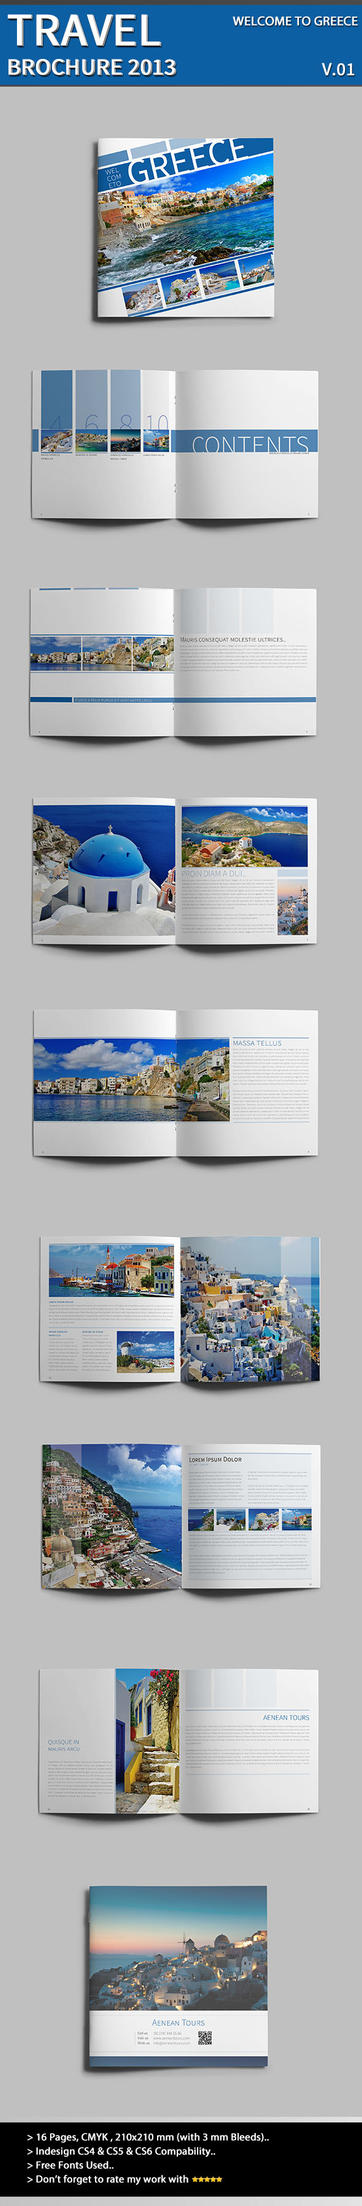 Welcome To Greece preview by BALKAy